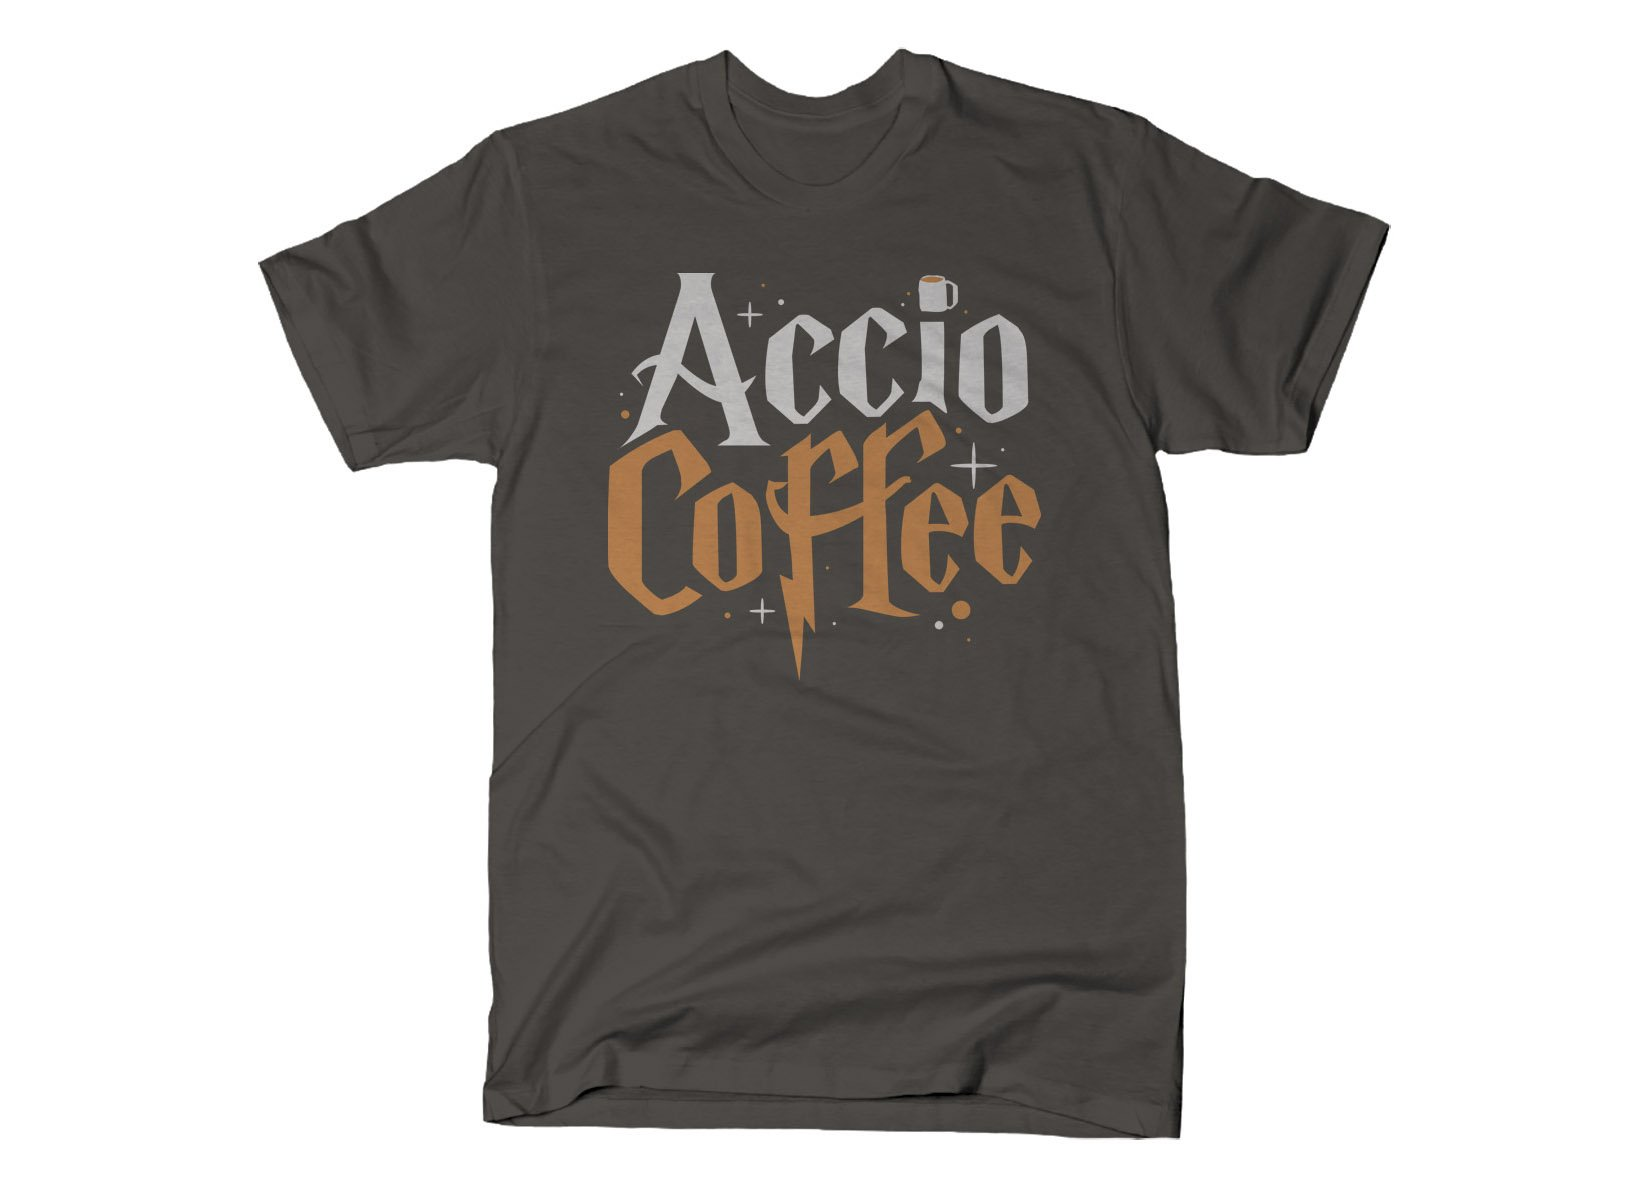 Accio Coffee on Mens T-Shirt